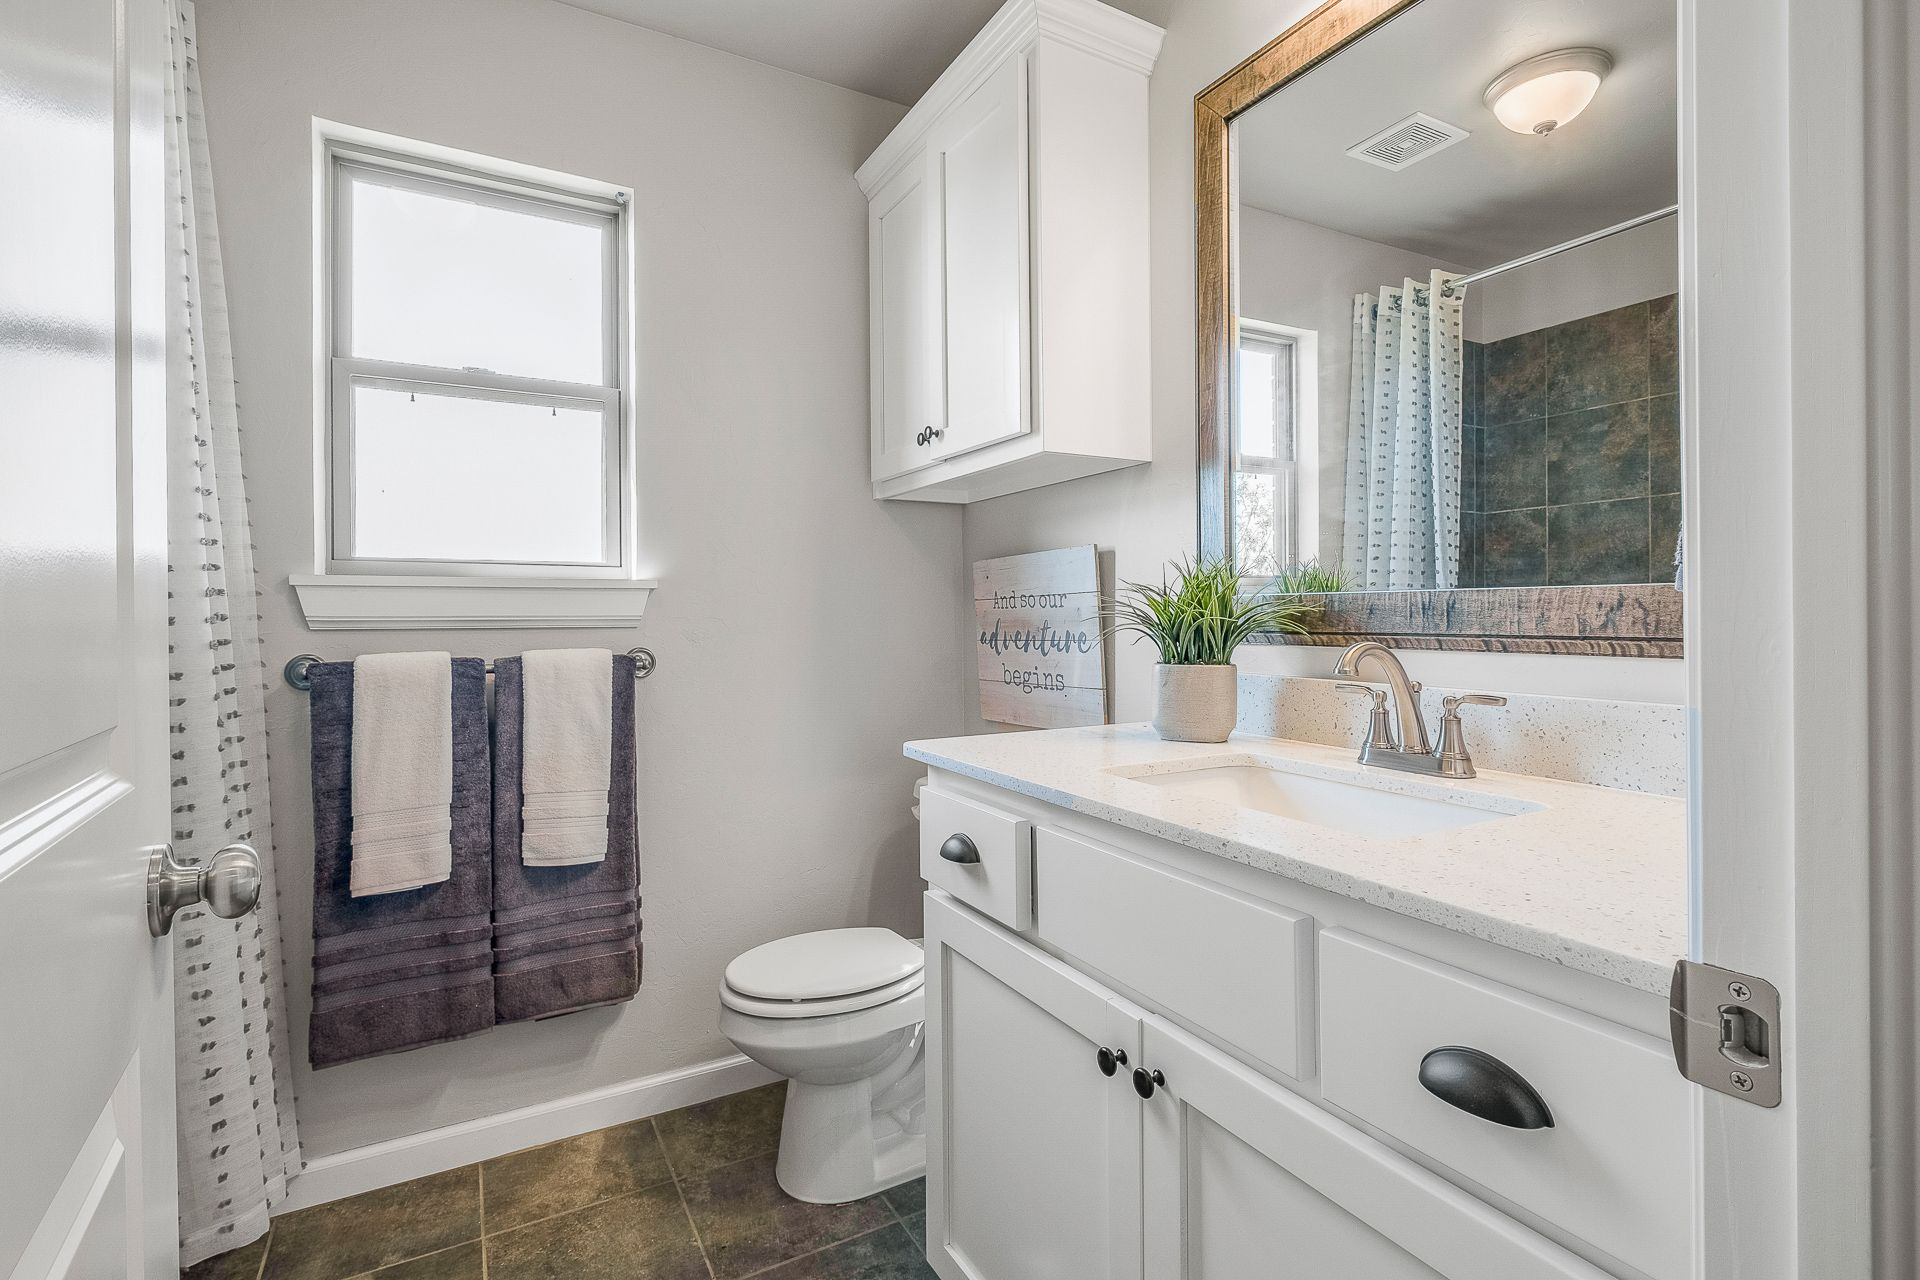 Bathroom featured in the Kincaid By Ideal Homes in Oklahoma City, OK